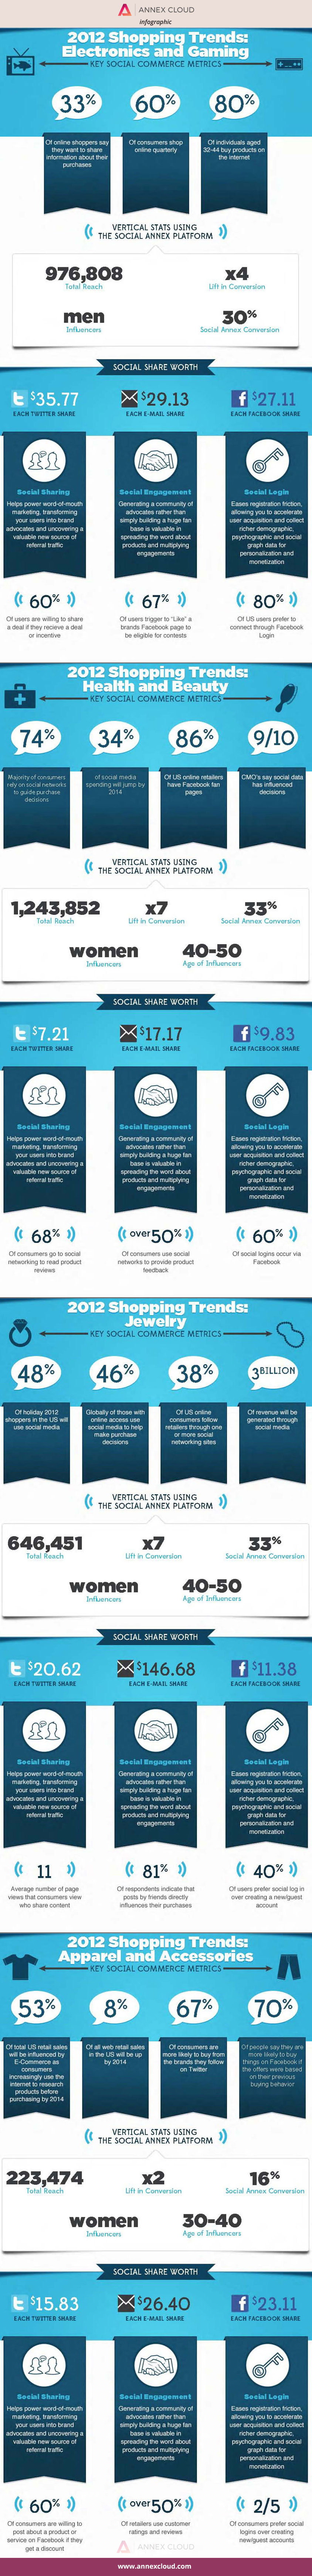 Annex Cloud SHOPPING TRENDS 2012